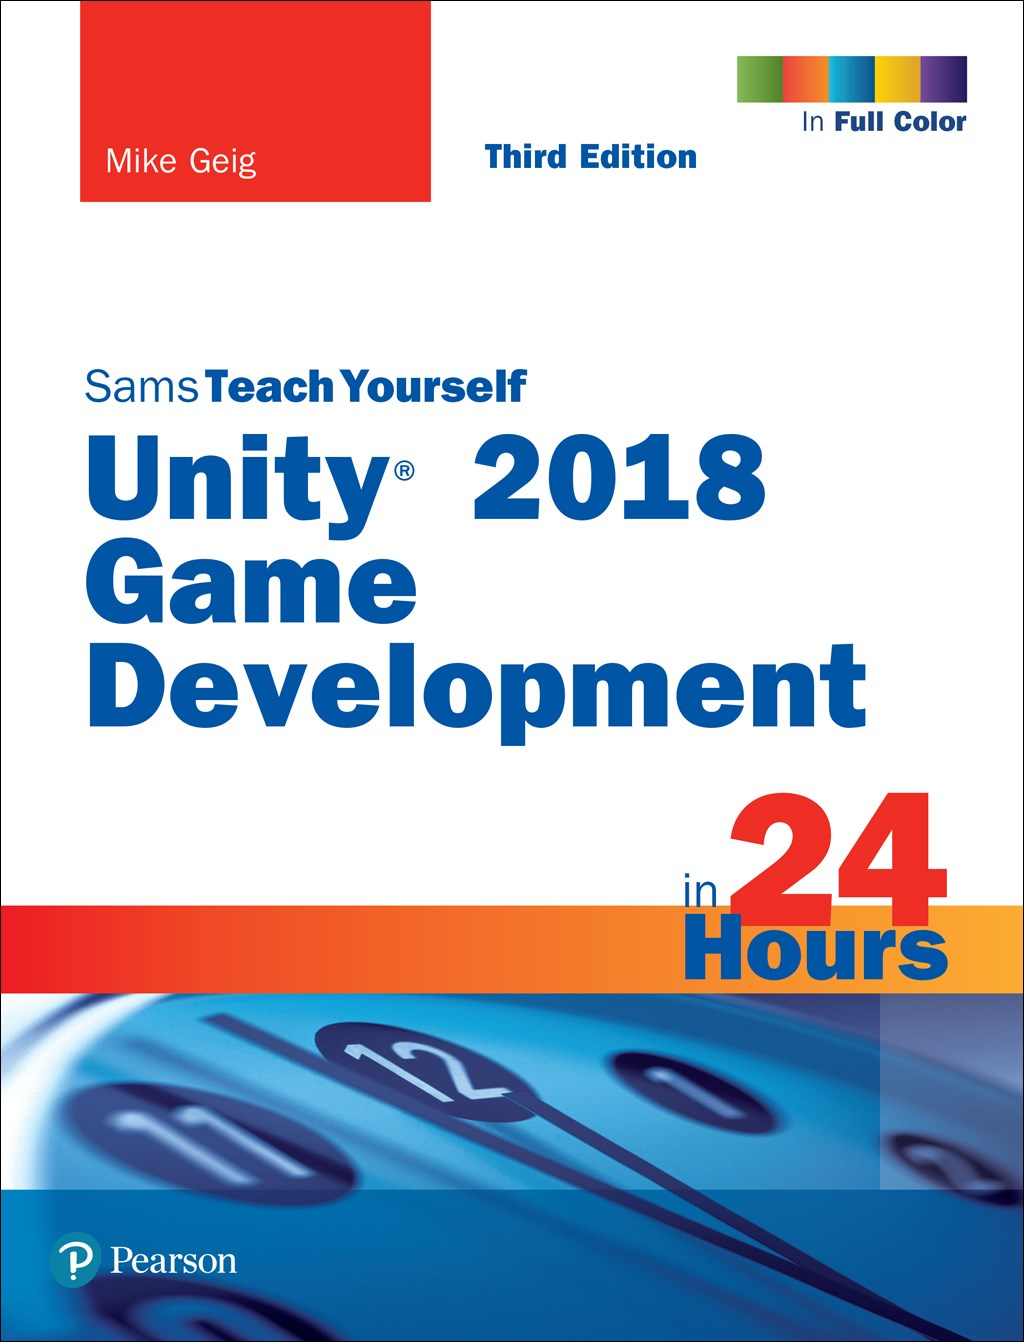 Unity 2018 Game Development in 24 Hours, Sams Teach Yourself, 3rd